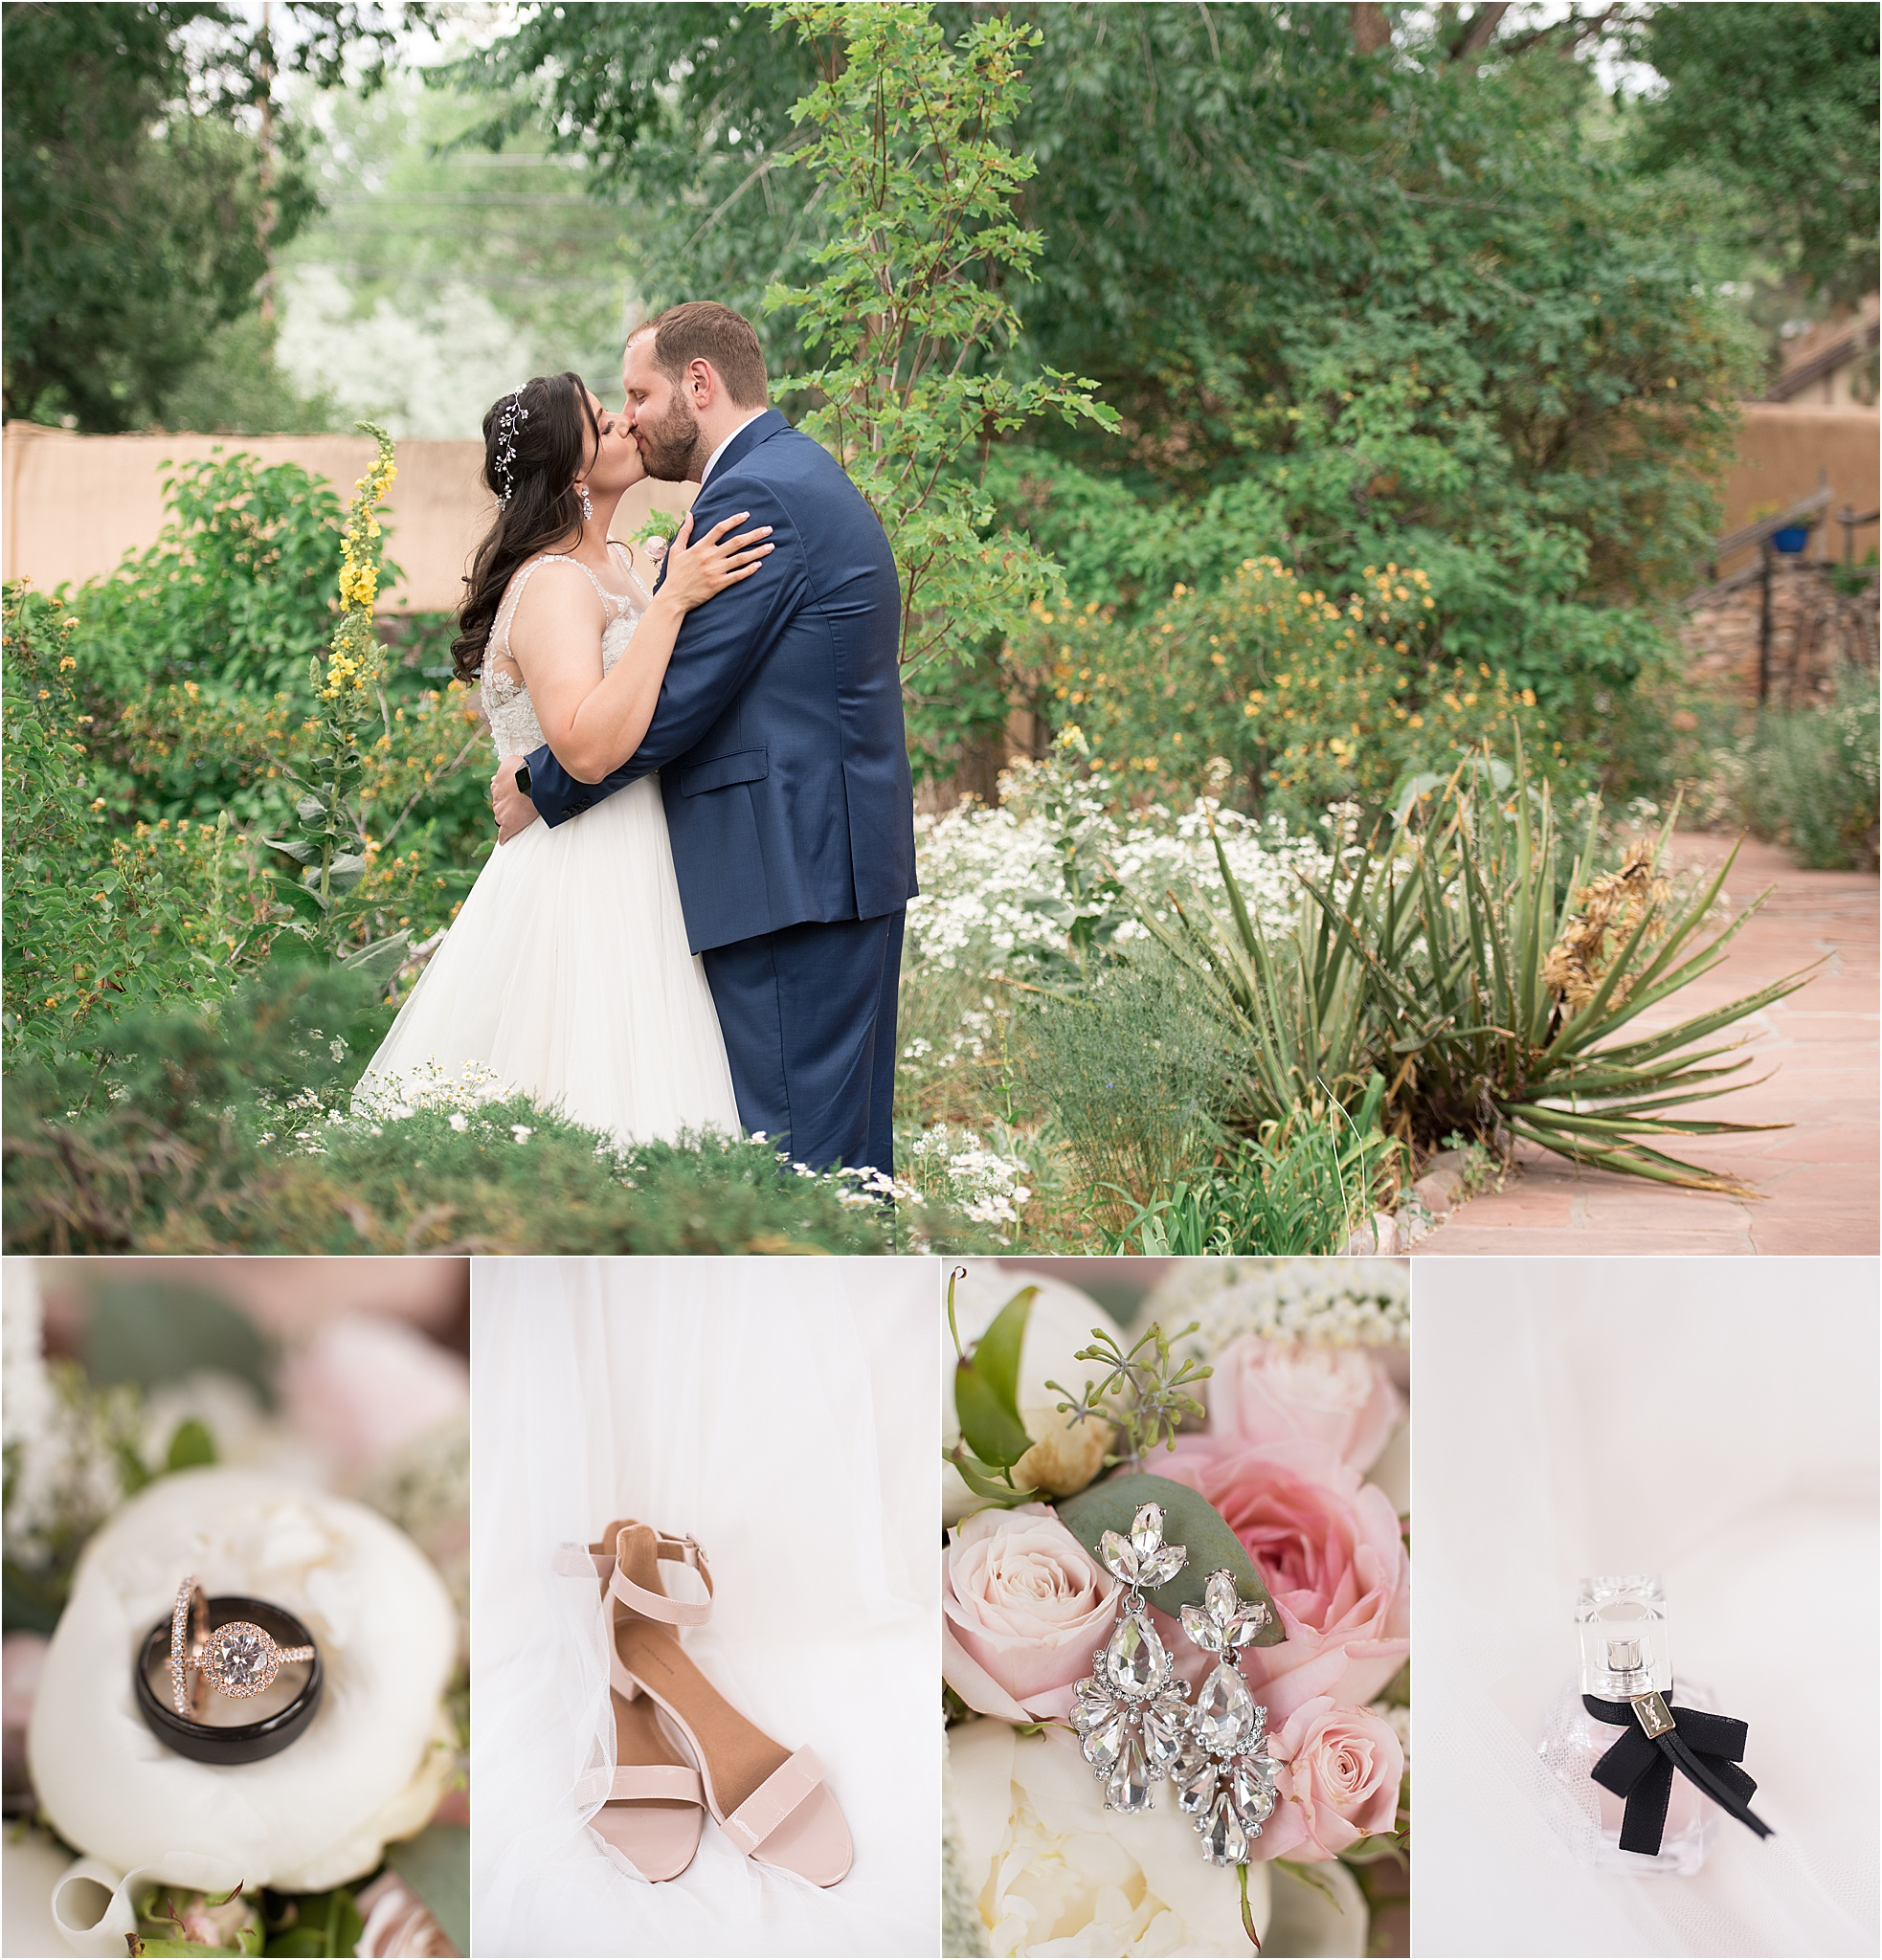 santa fe inn of the turquoise bear wedding photographer new mexico kayla kitts intimate blush dessert